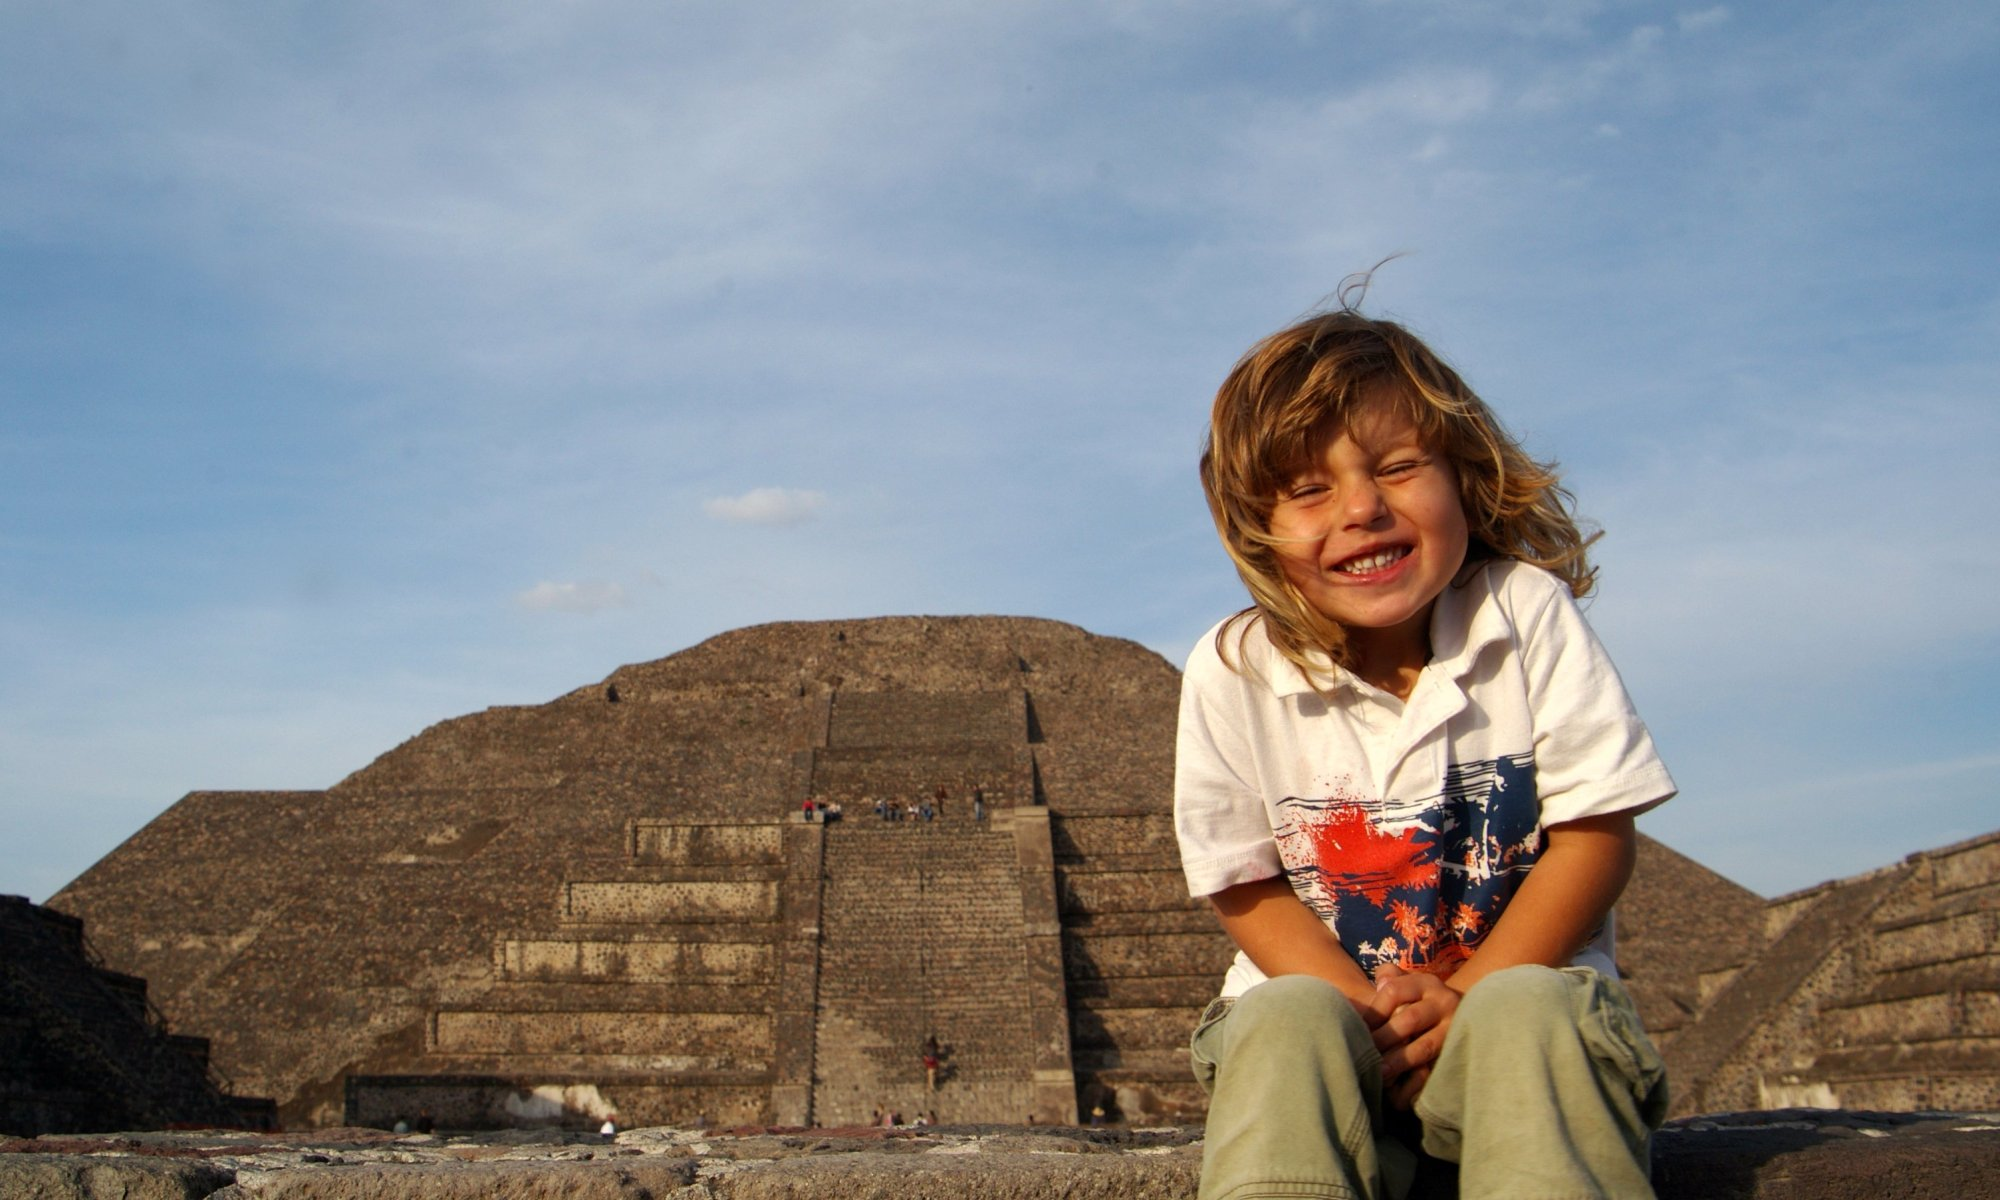 Alex sitting in front of the Pyramid of the Sun